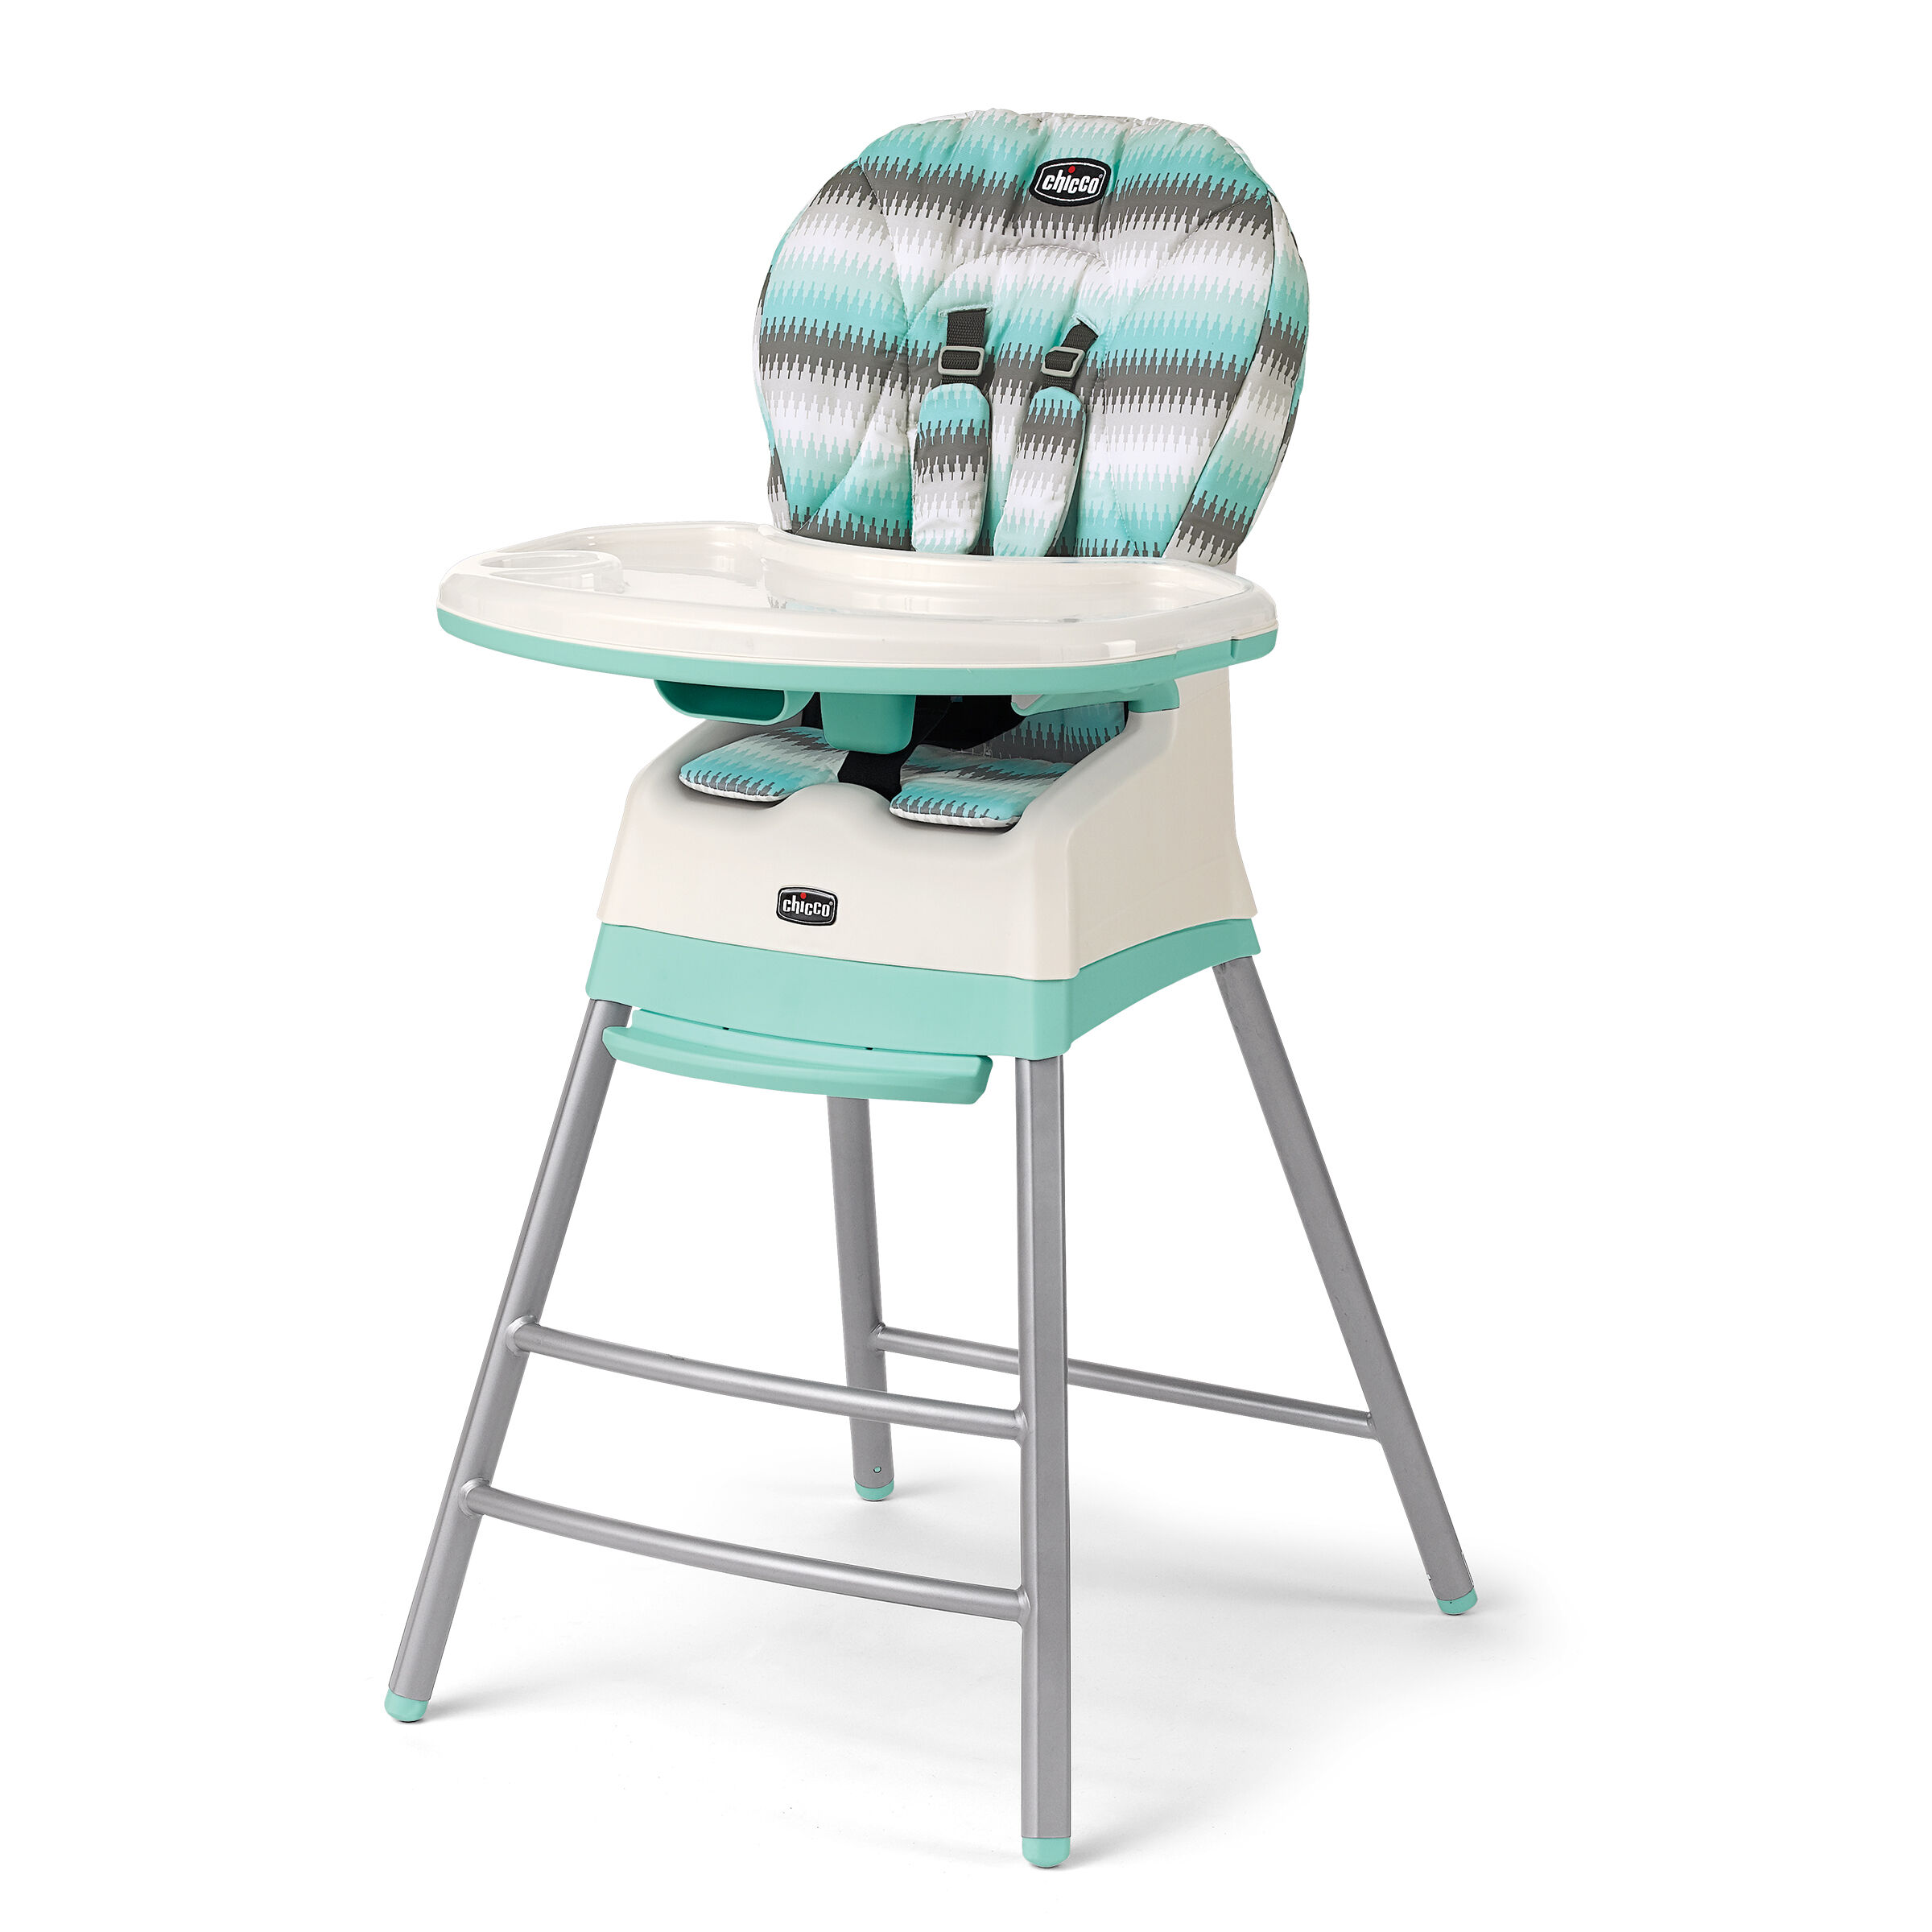 stack 3in1 highchair stack 3 in 1 highchair modmint